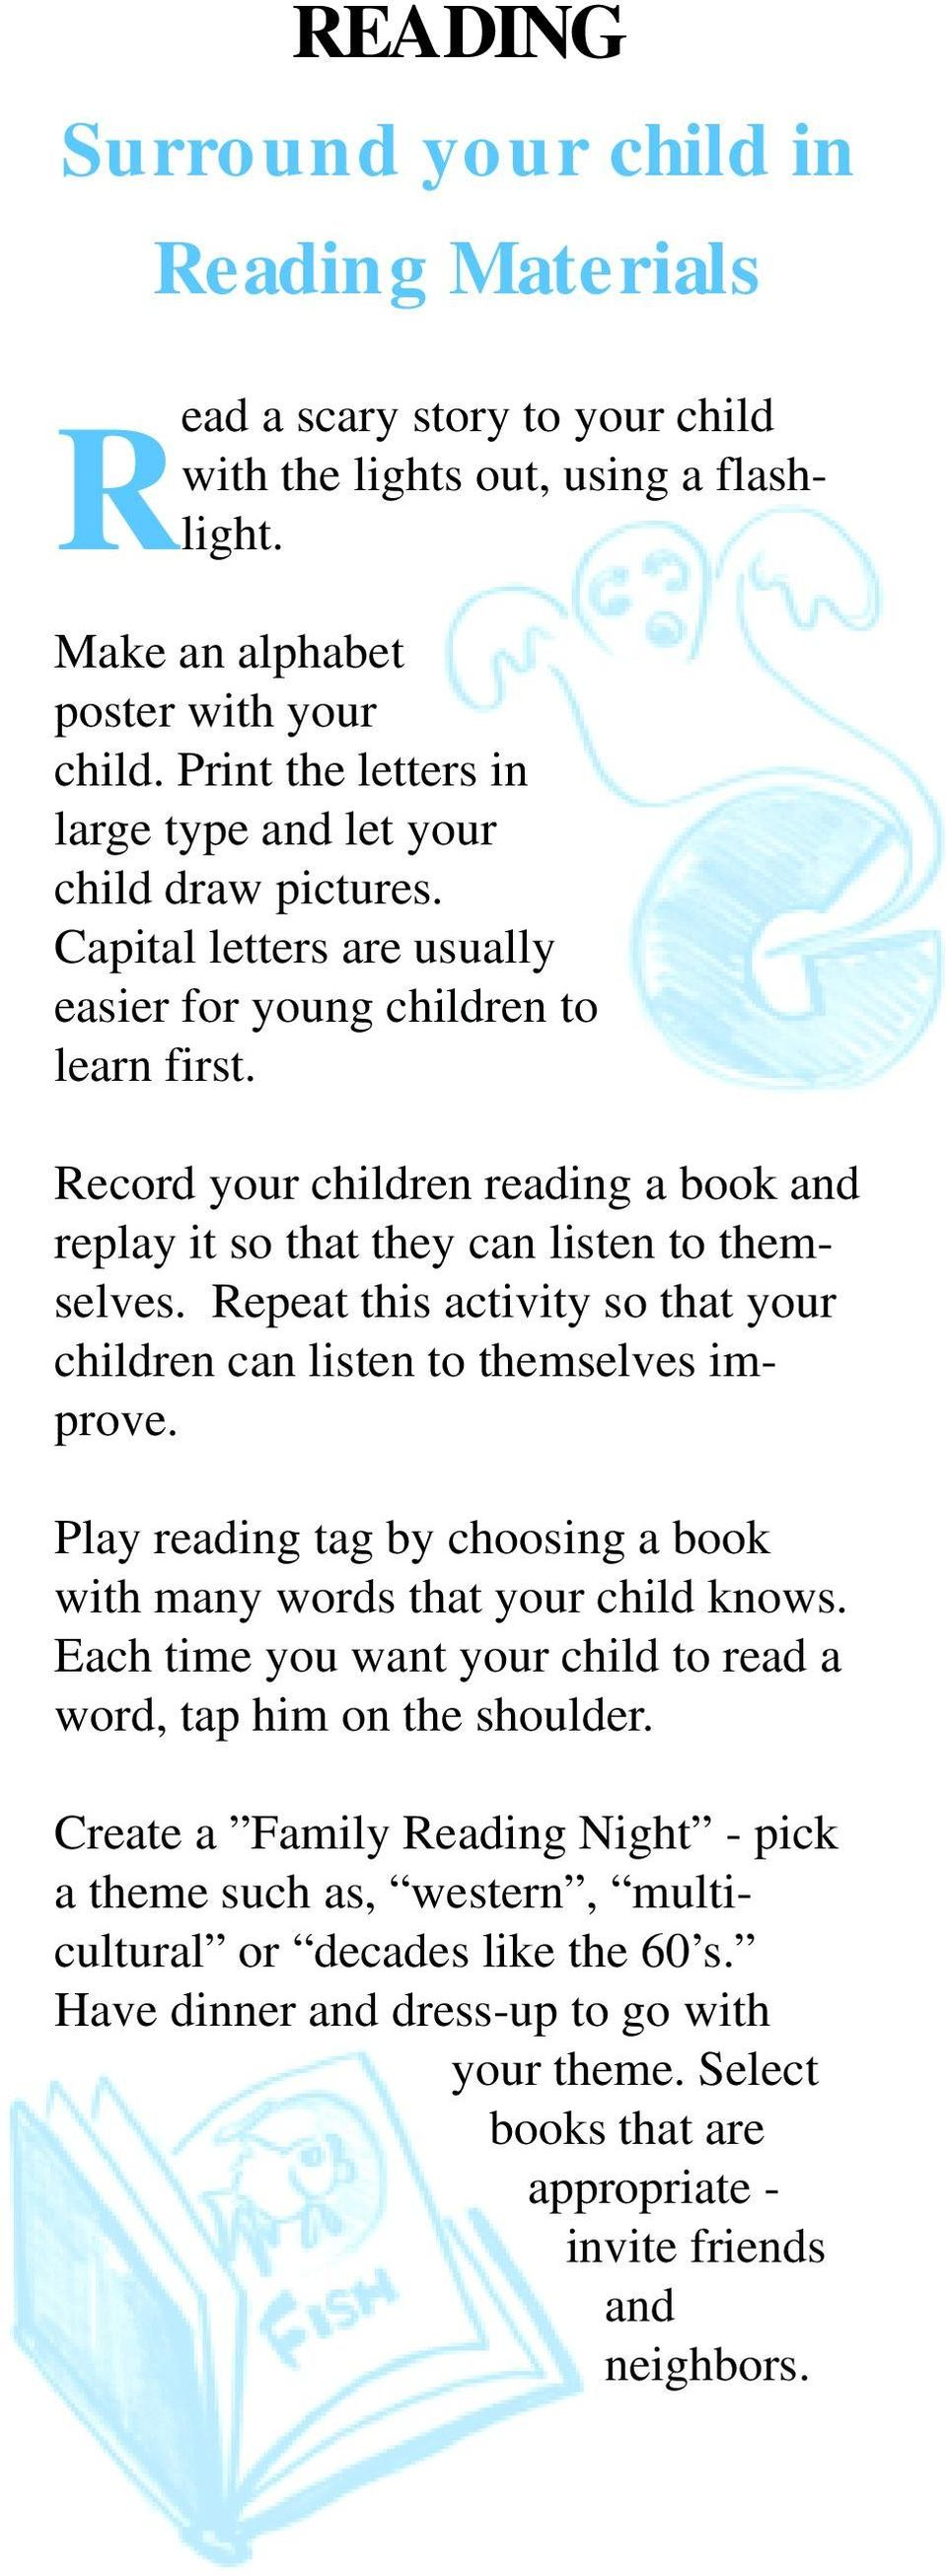 Record your children reading a book and replay it so that they can listen to themselves. Repeat this activity so that your children can listen to themselves improve.